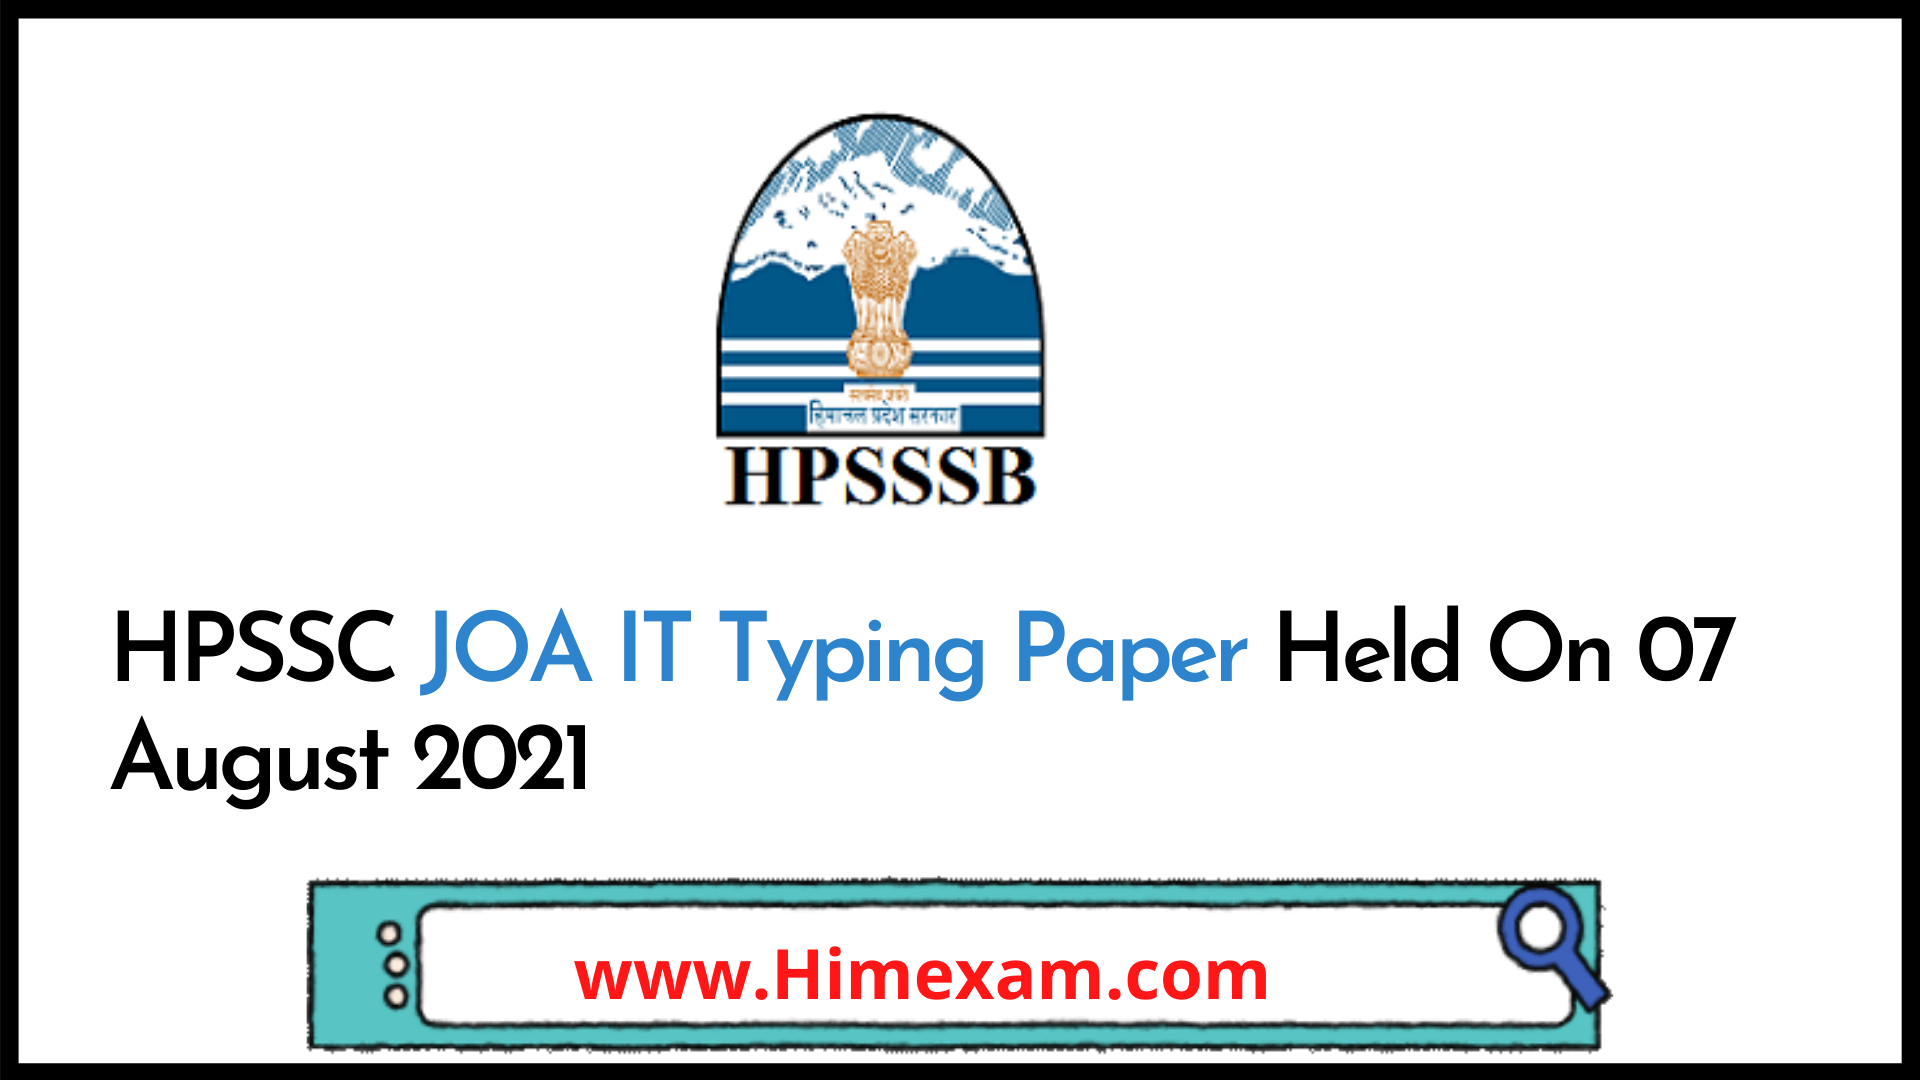 HPSSC JOA IT Typing Paper Held On 07 August 2021